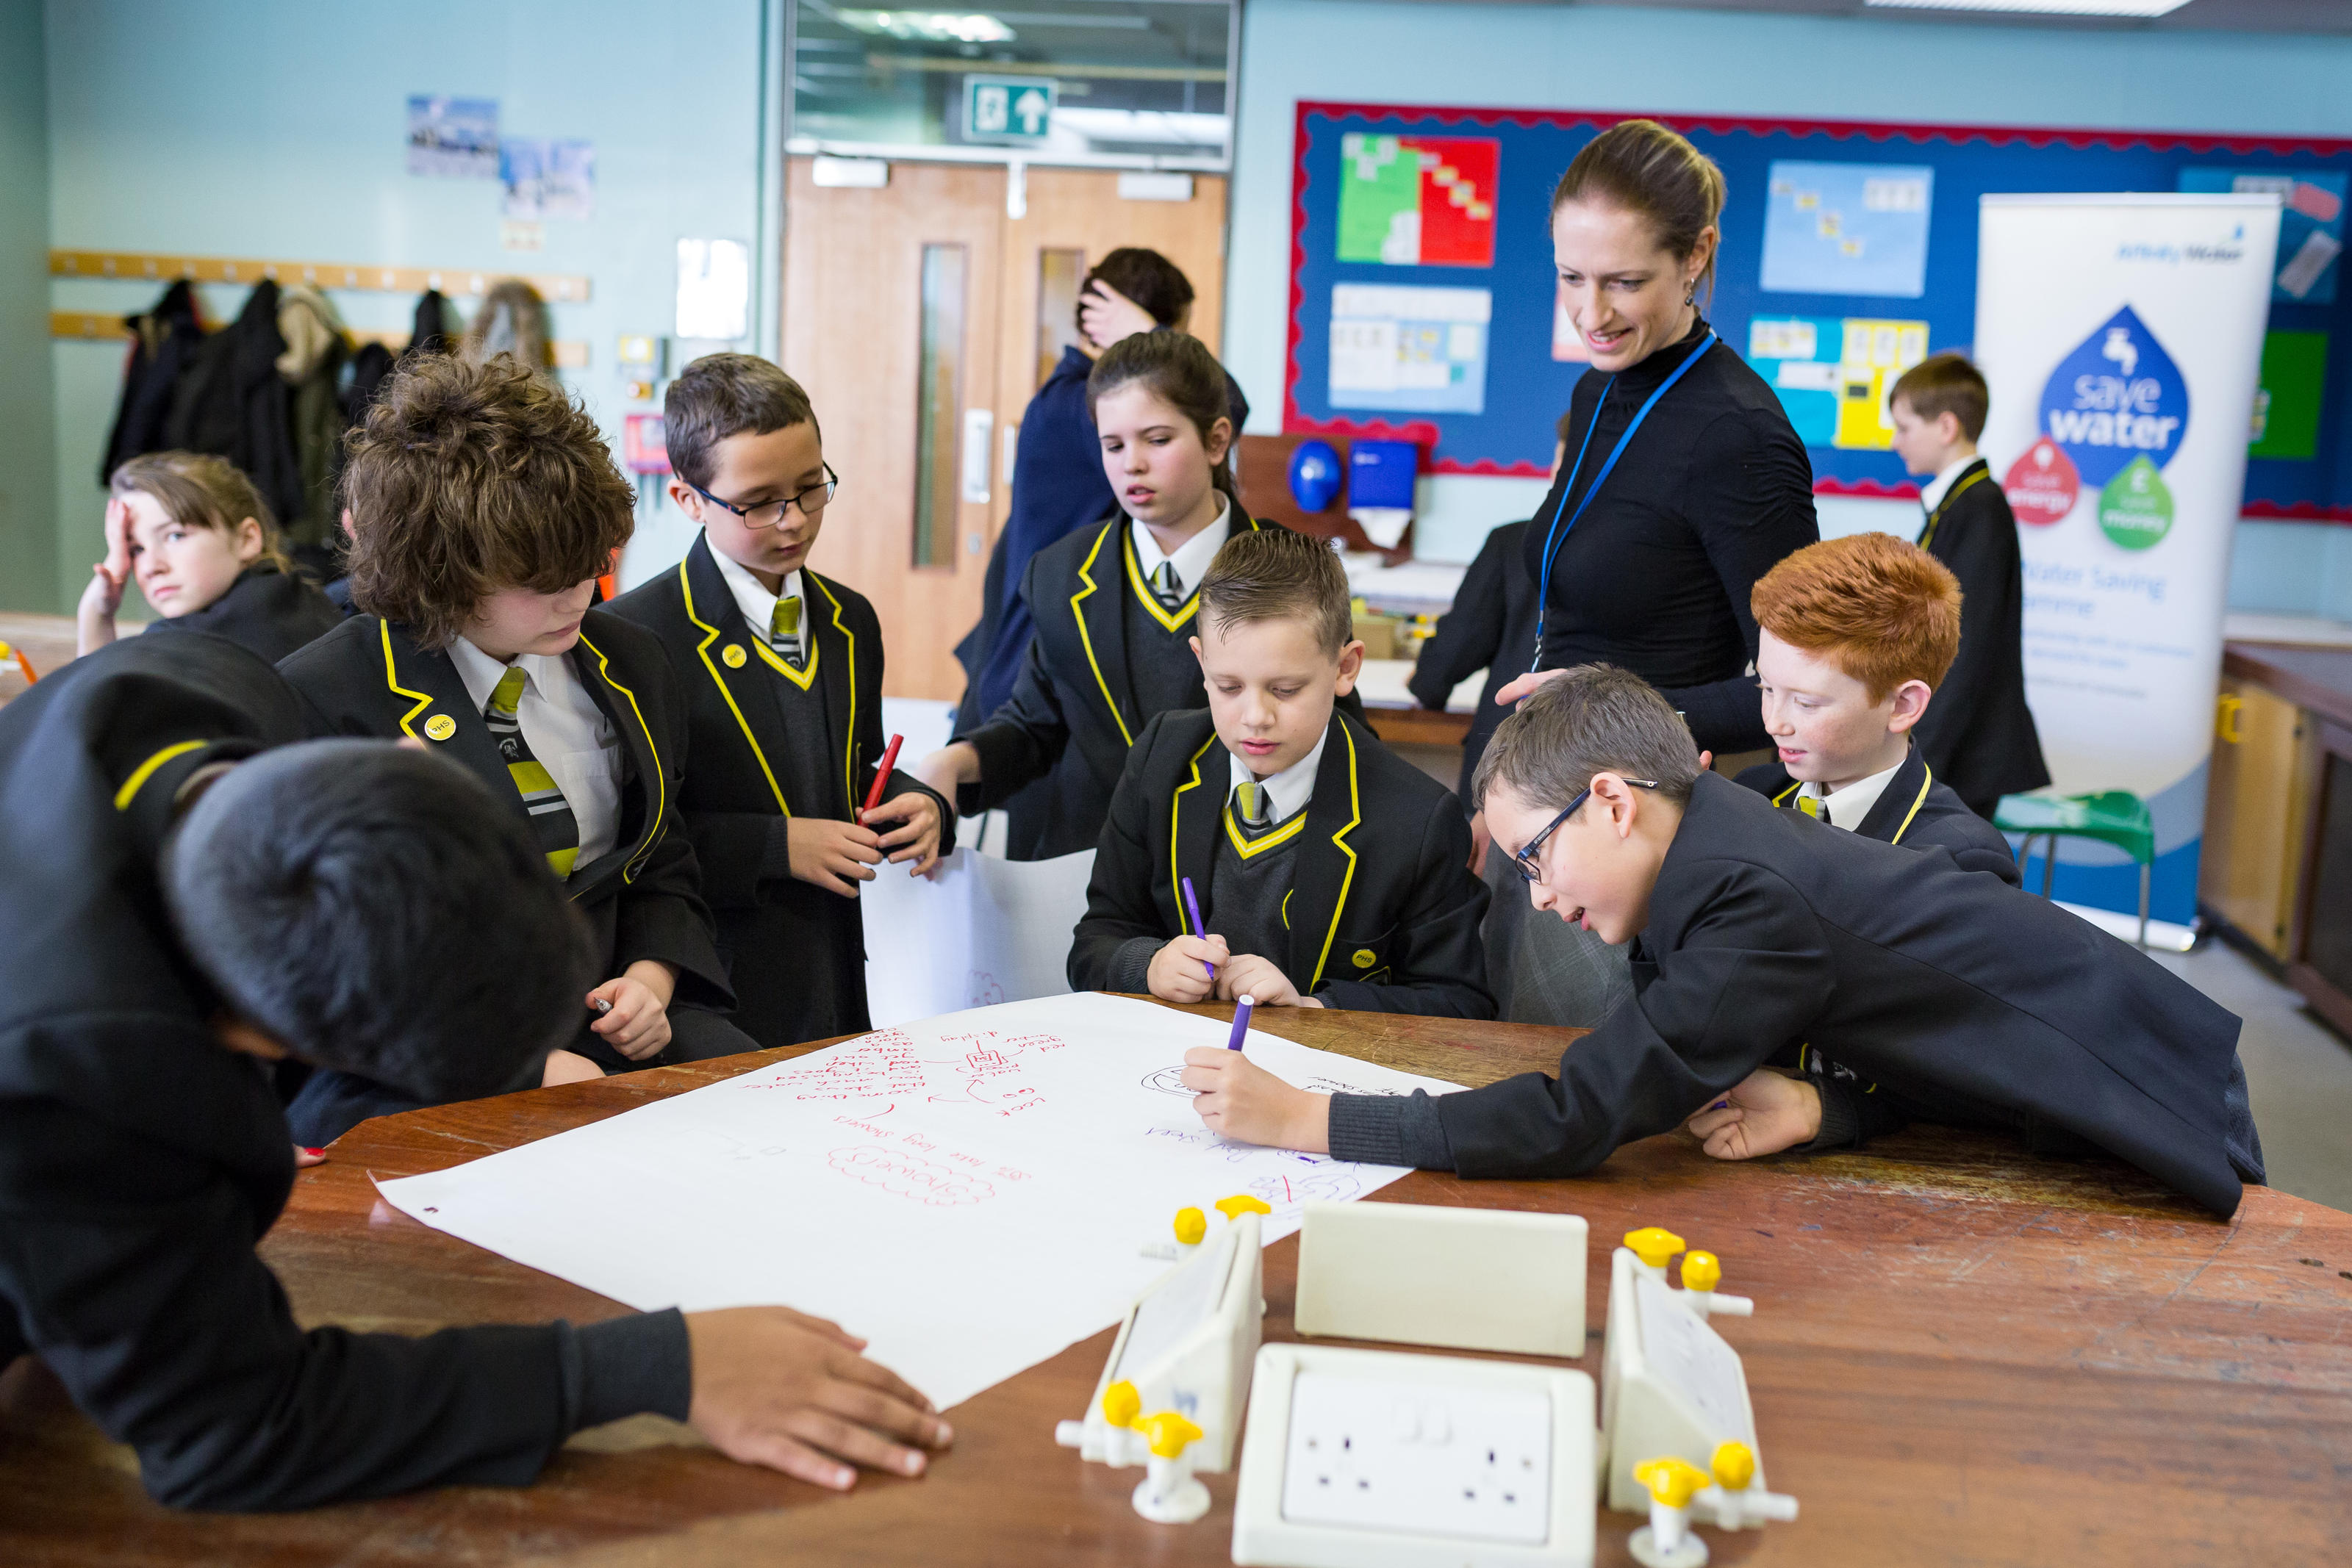 Pupils take on a Challenge Water activity at a High School Challenge Water workshop with Affinity Water, Luton, UK, February 2016